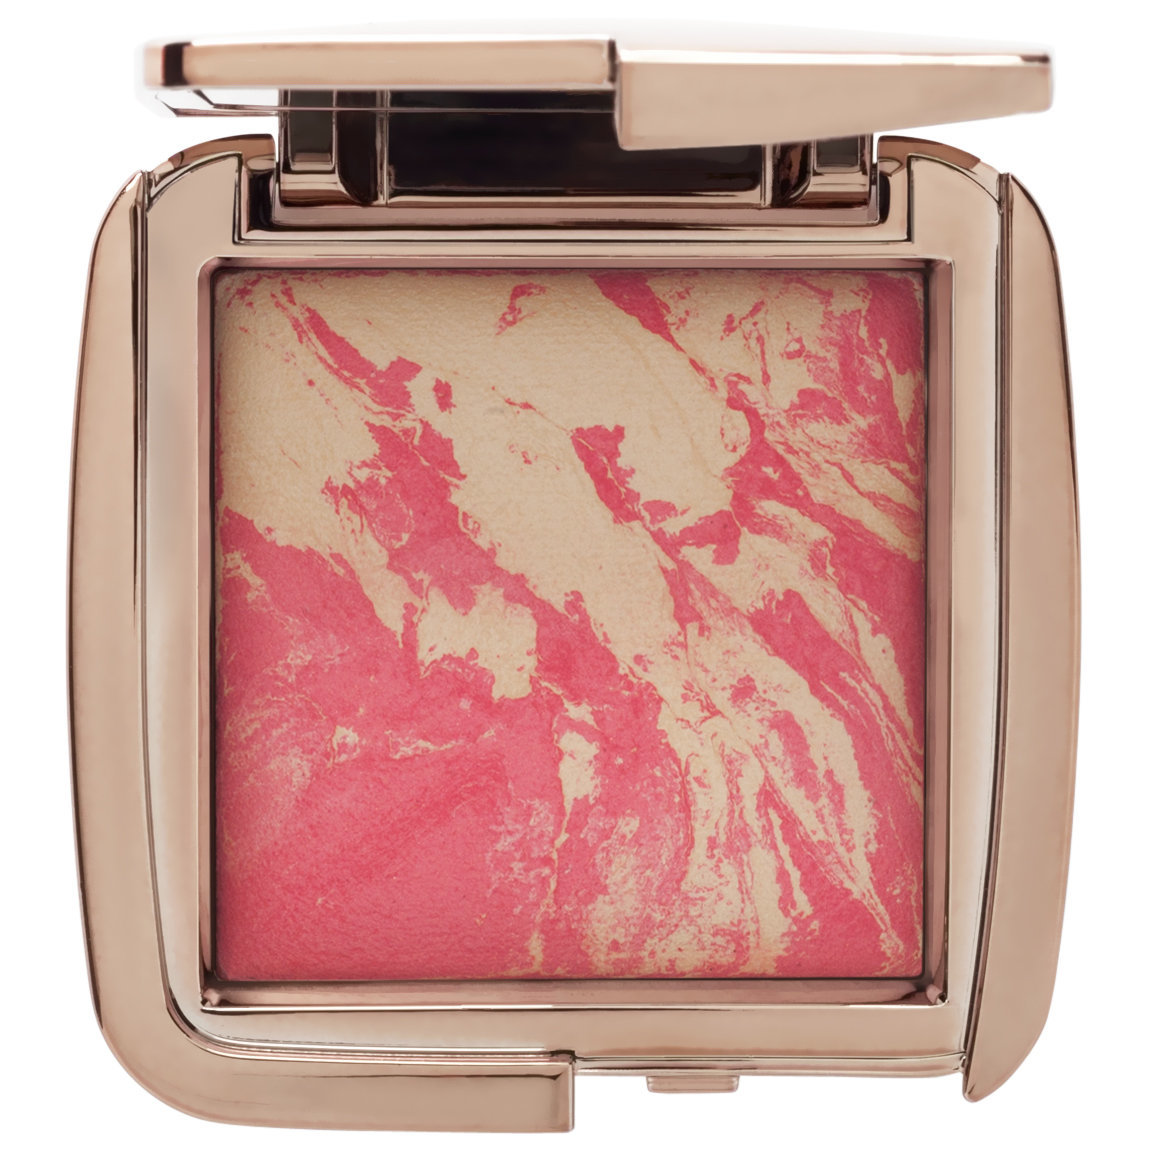 Delightful Hourglass Ambient Lighting Blush Diffused Heat Product Smear. Amazing Pictures